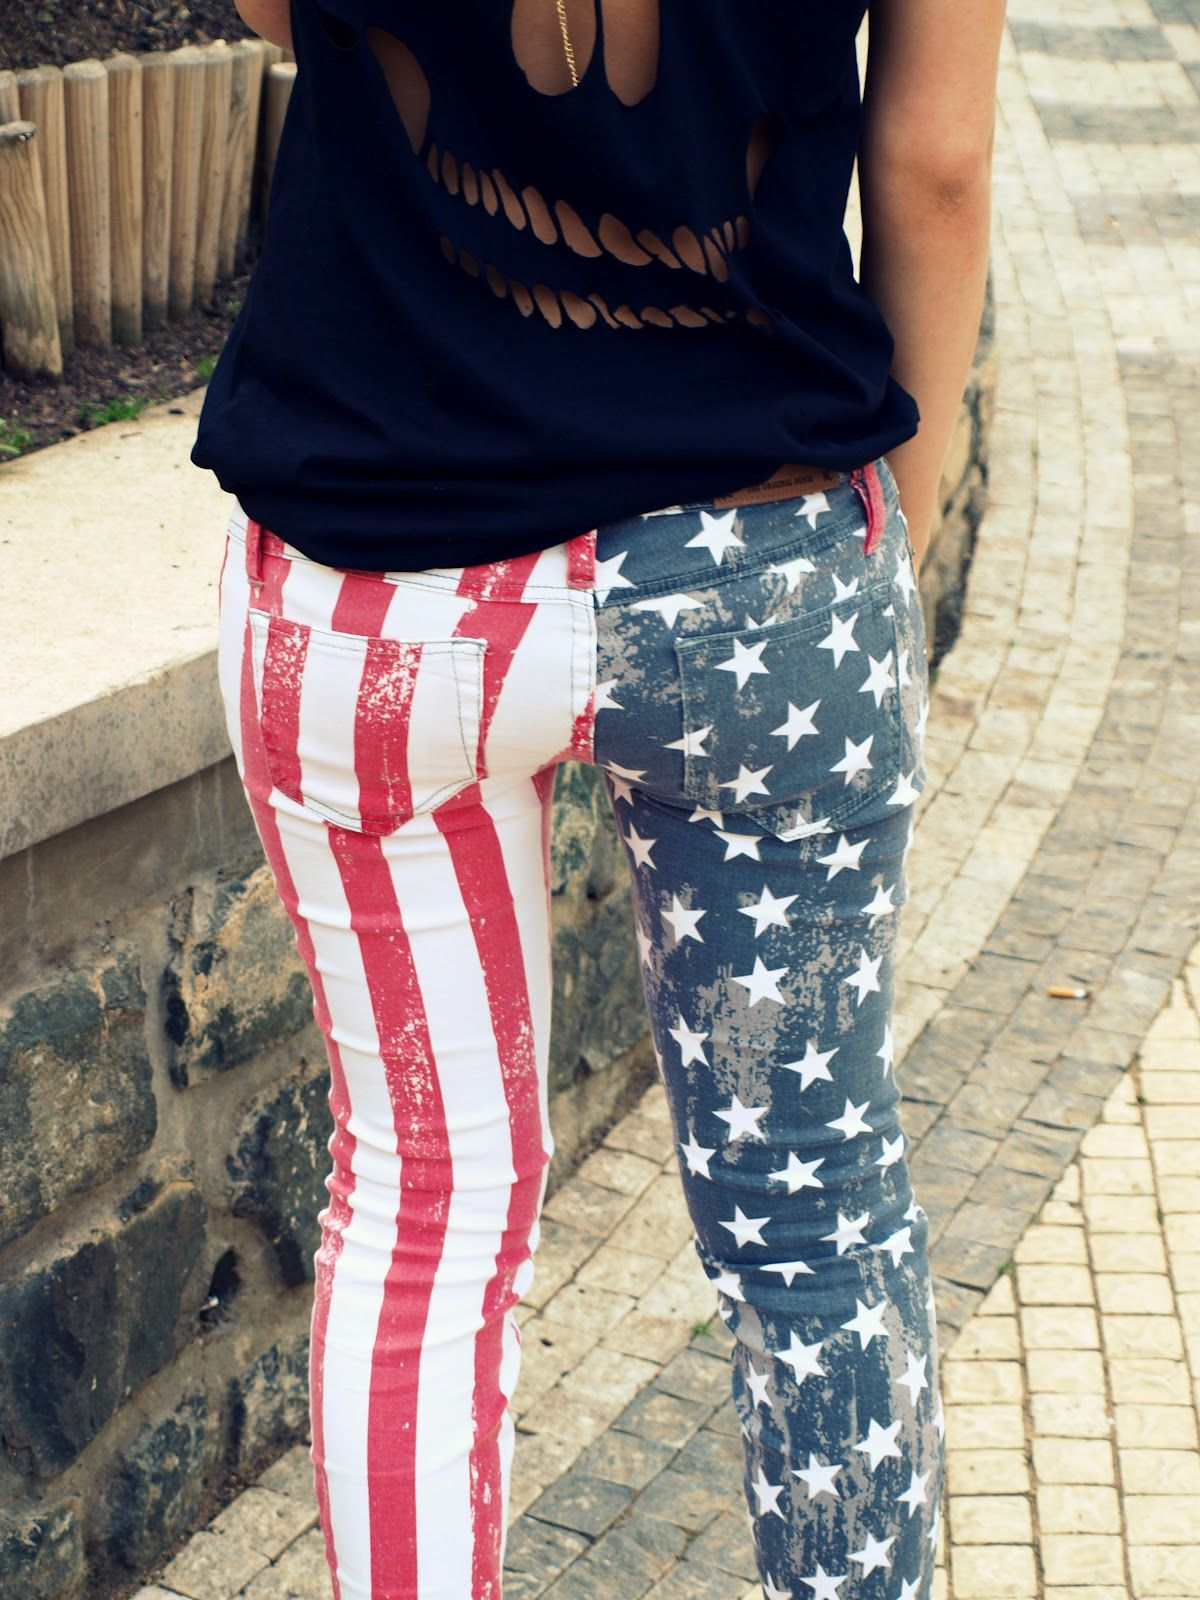 81791e10 Faded 'merican flag jeans. | USA! USA! | Fashion, Faded jeans, Tween ...